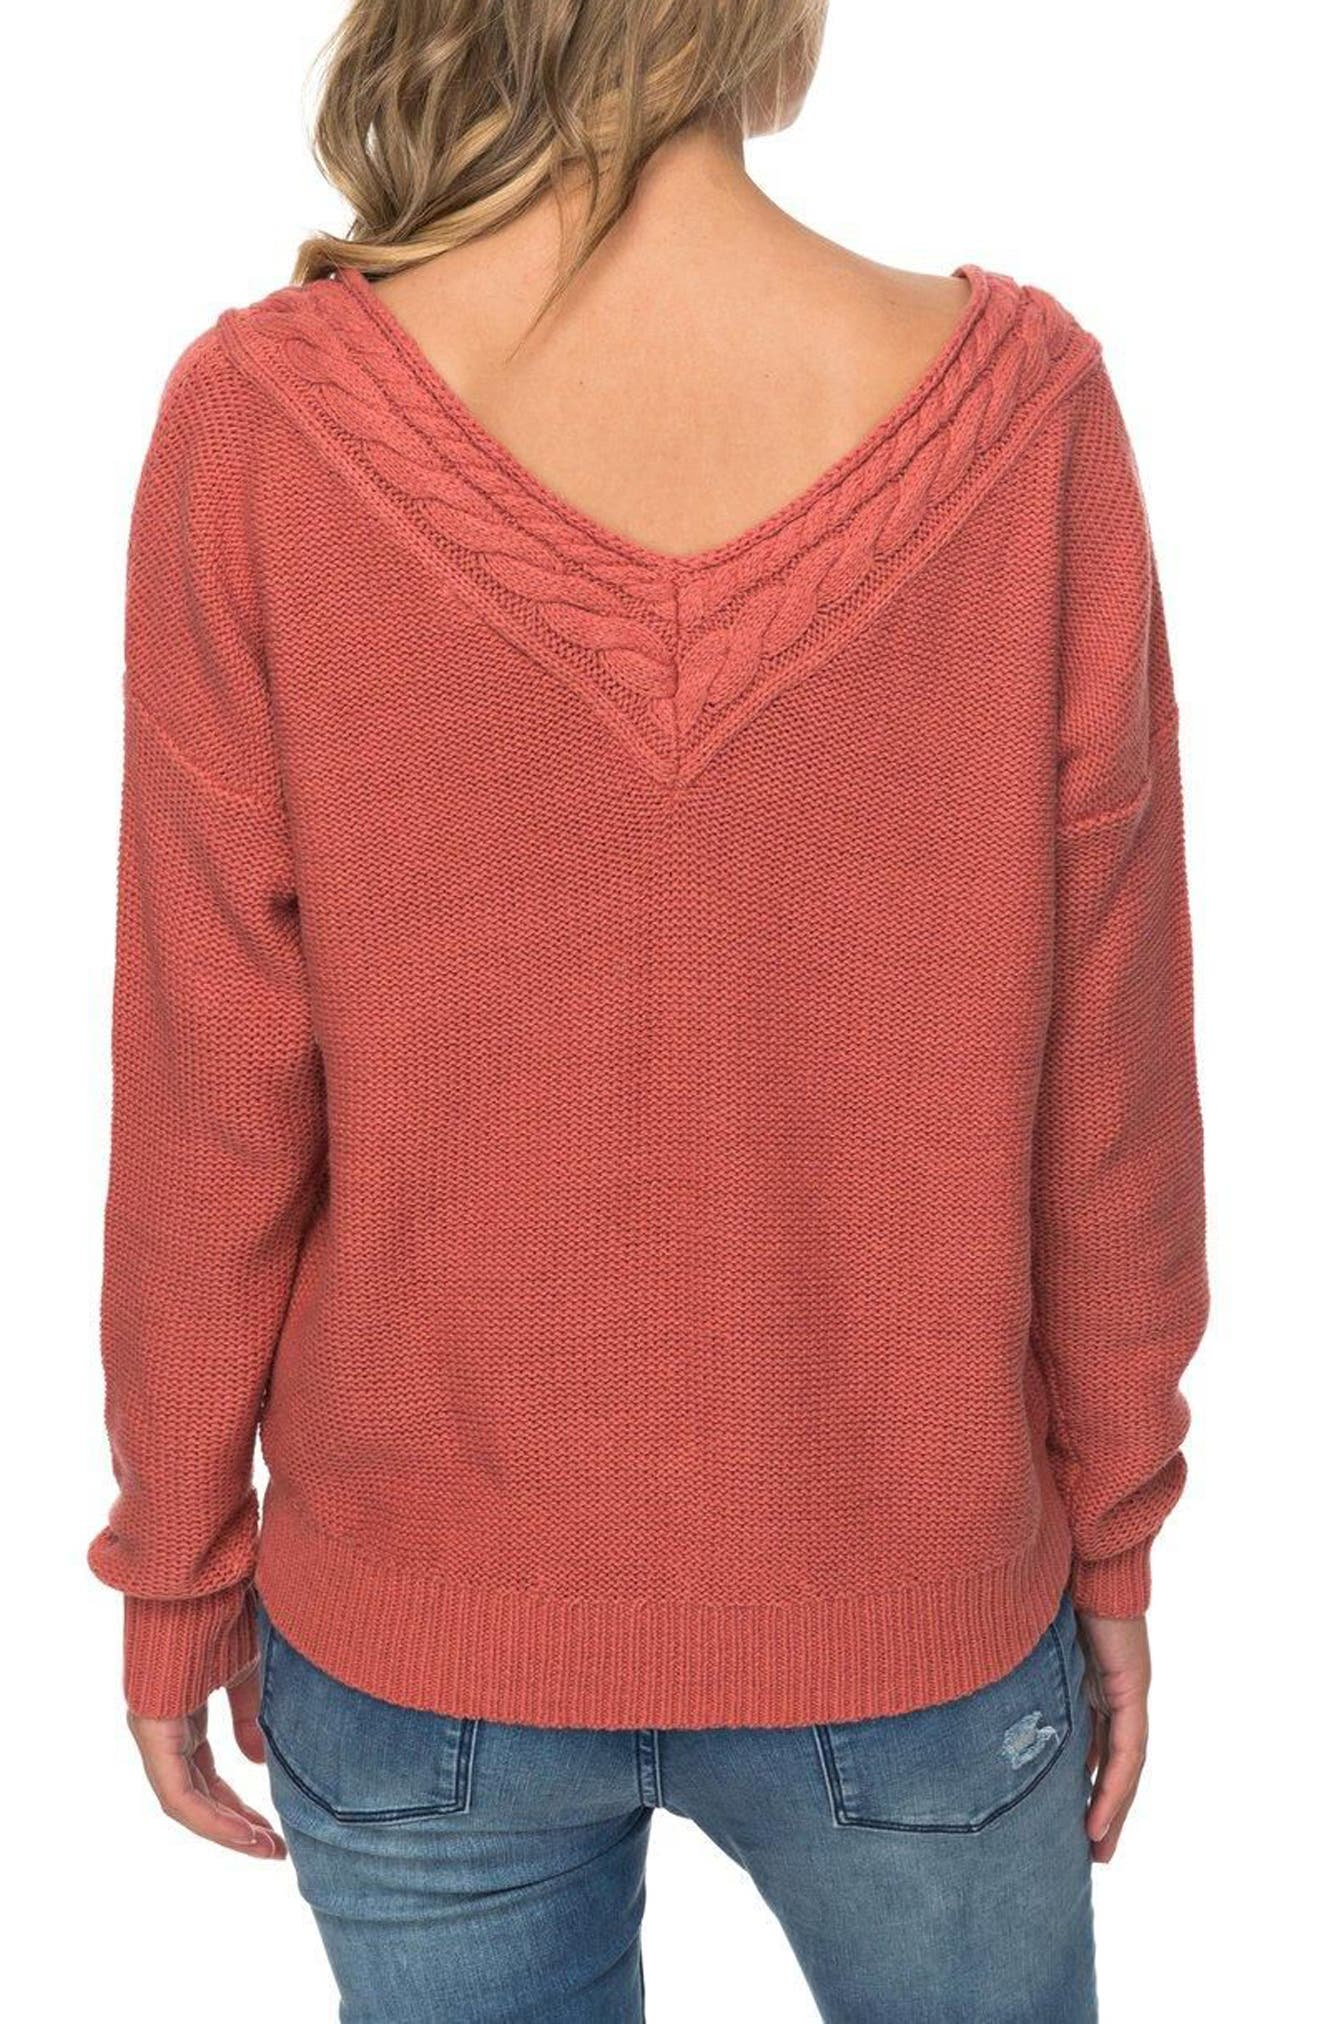 Choose to Shine Sweater,                             Alternate thumbnail 5, color,